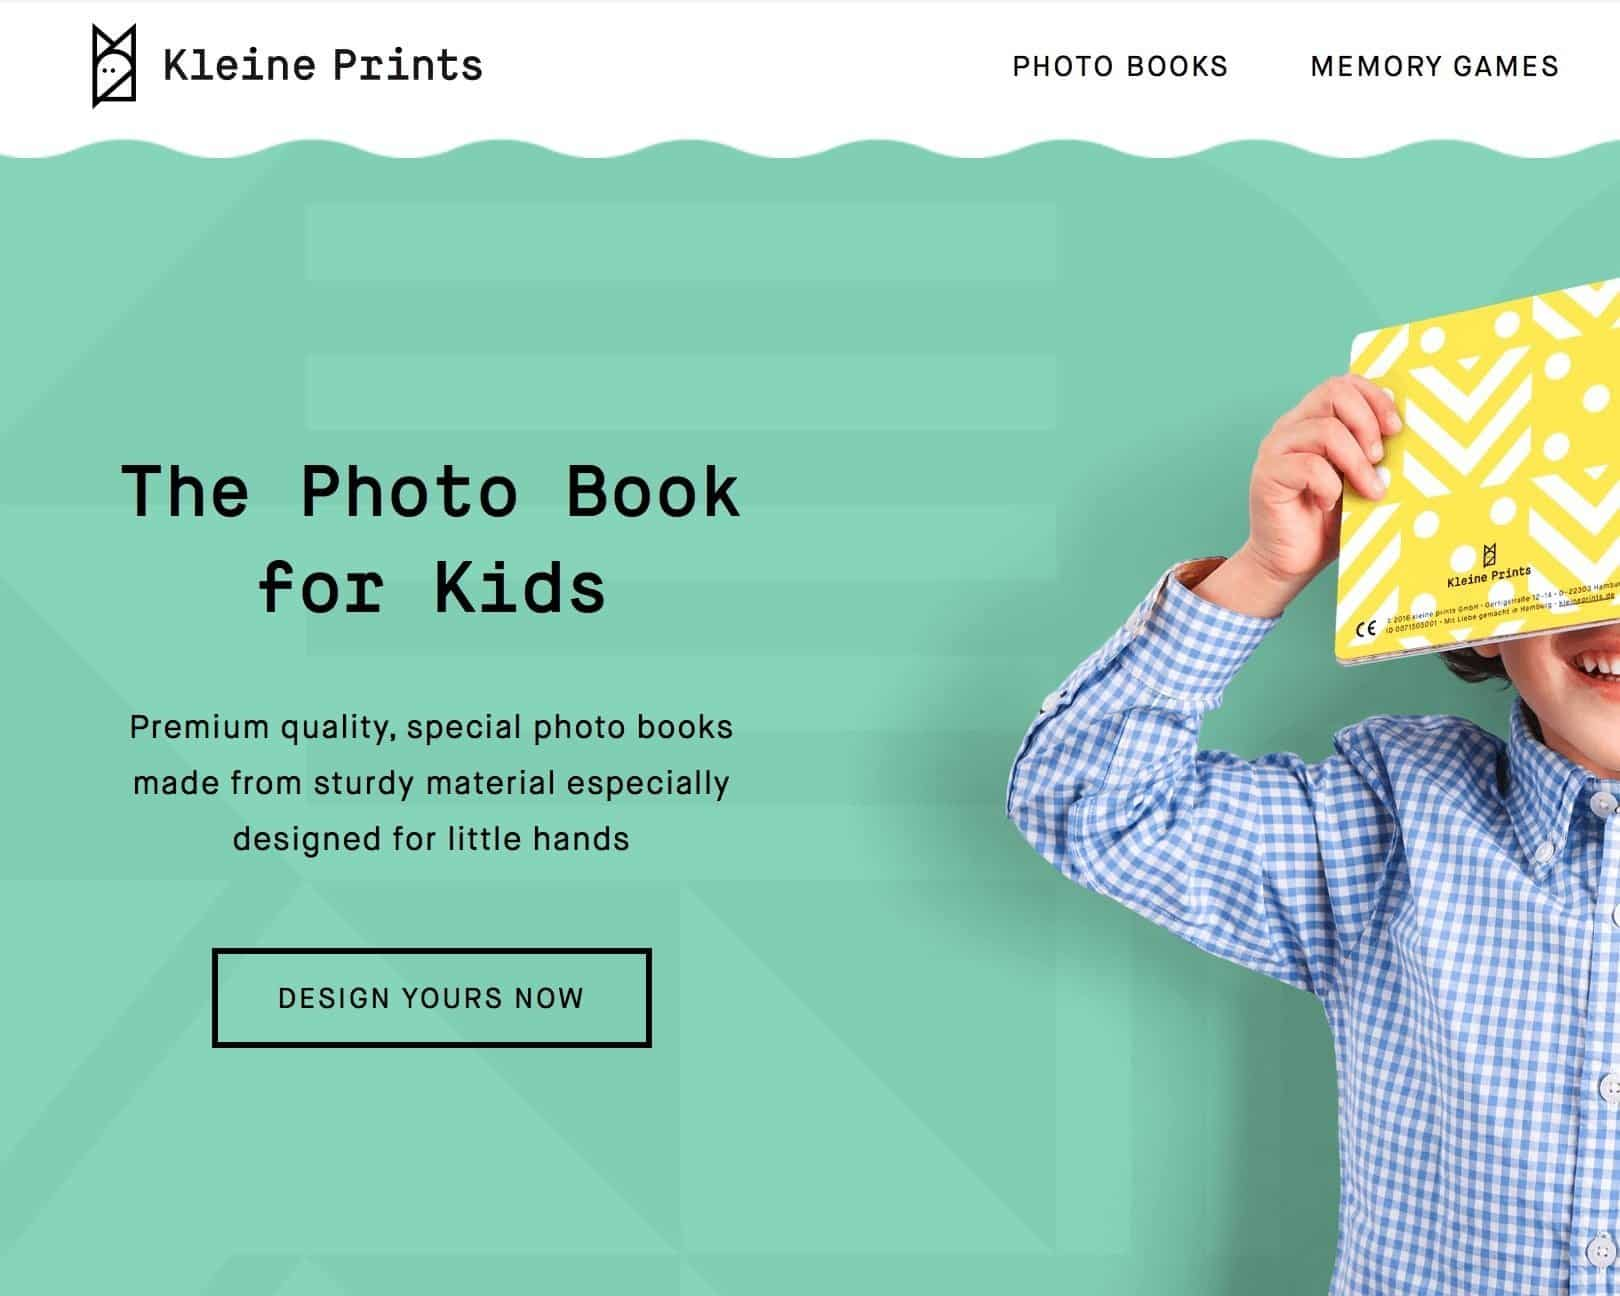 kleine-prints-english-website-translation